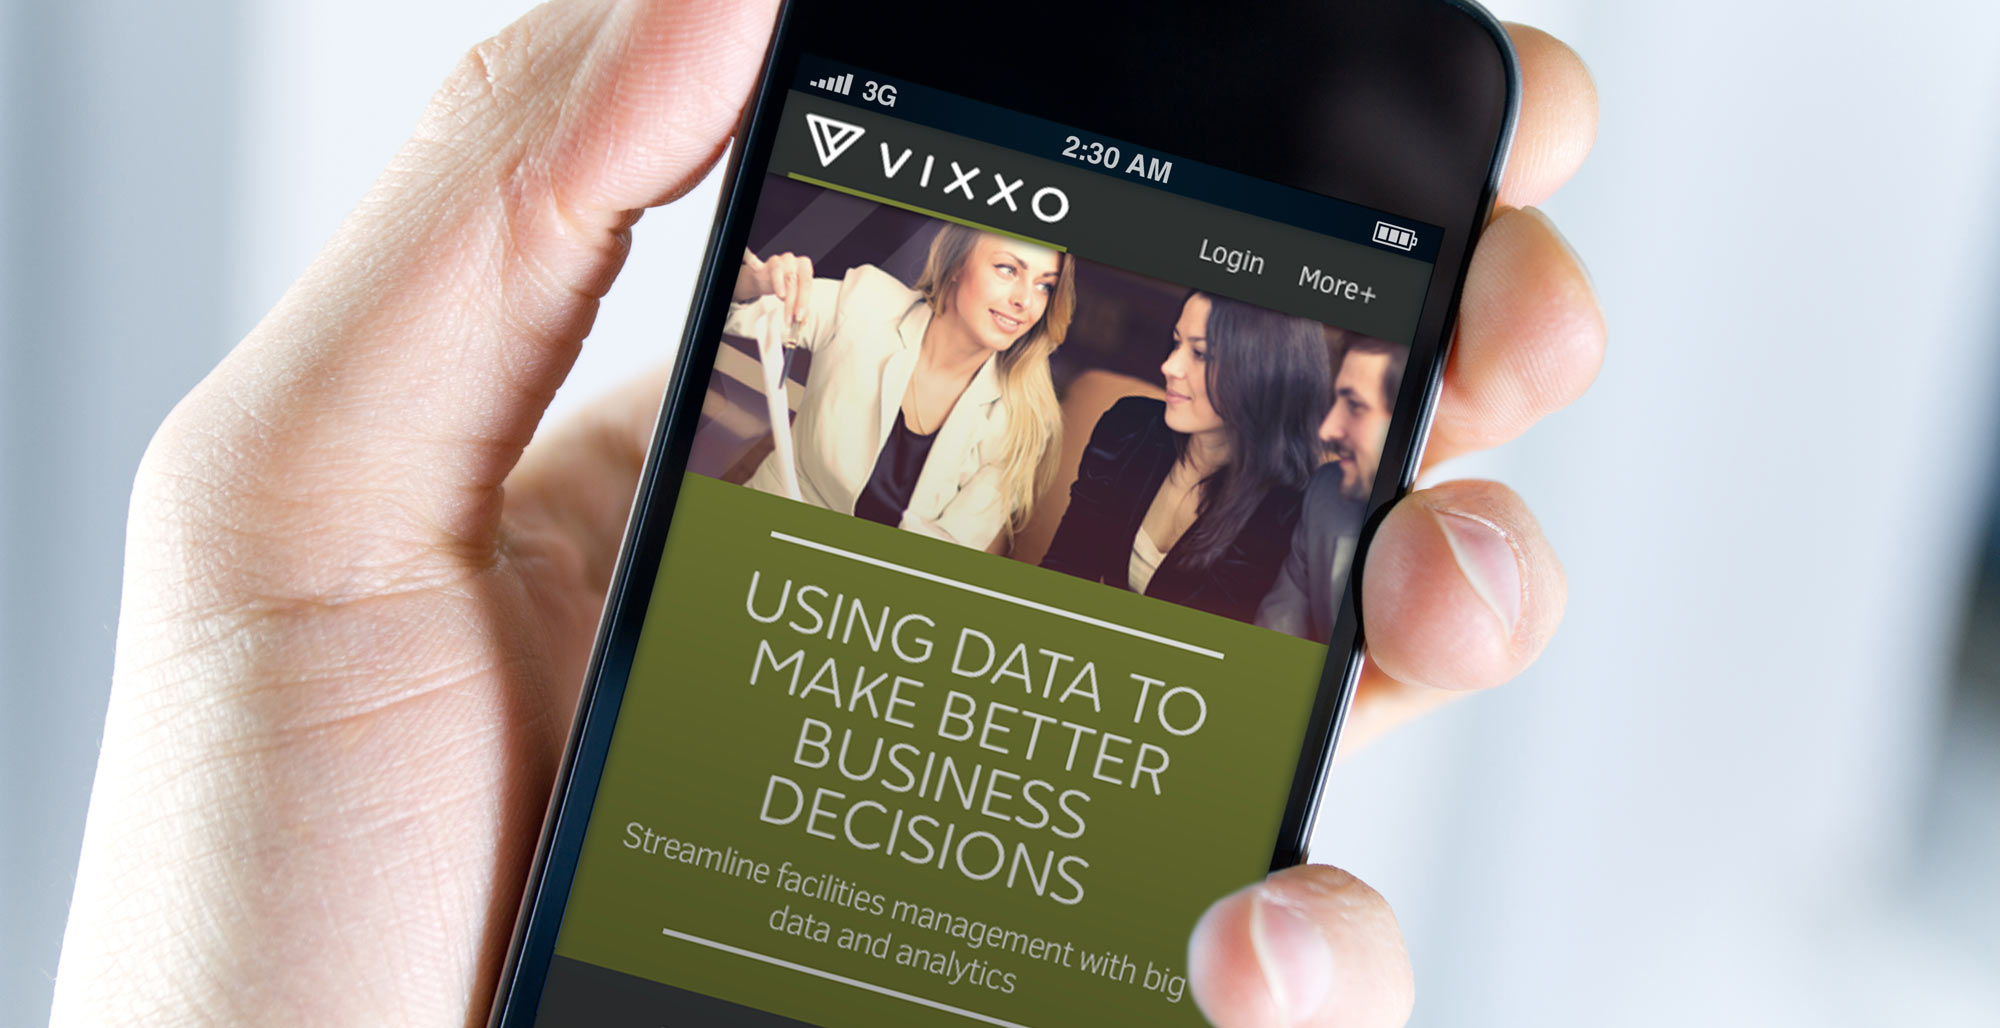 Vixxo Mobile User Experience